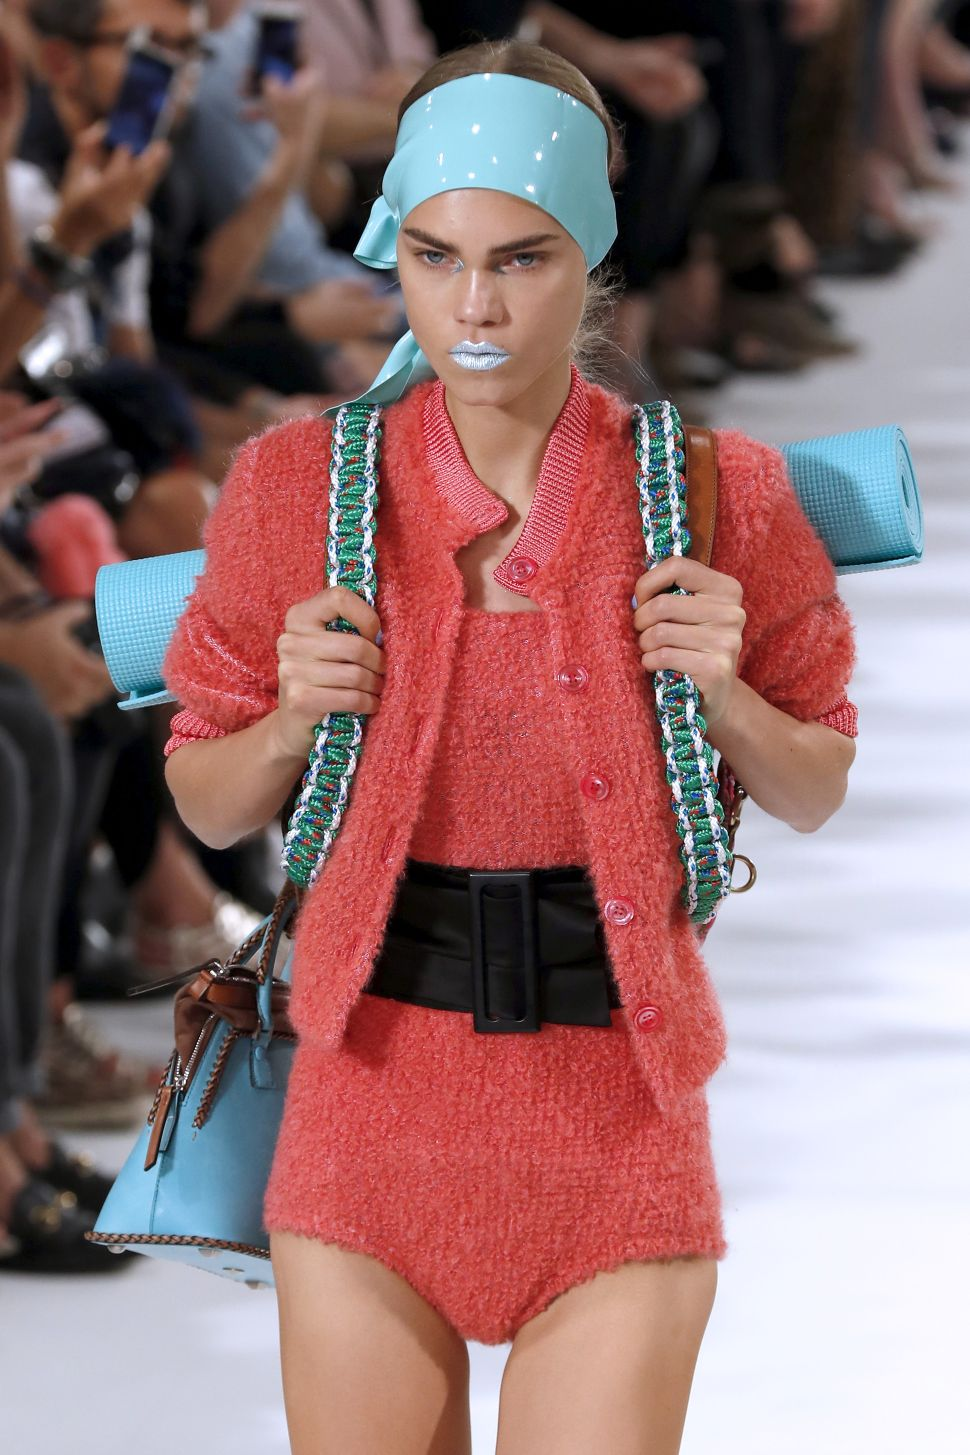 The Most Unexpected Accessory at Paris Fashion Week? A Yoga Mat